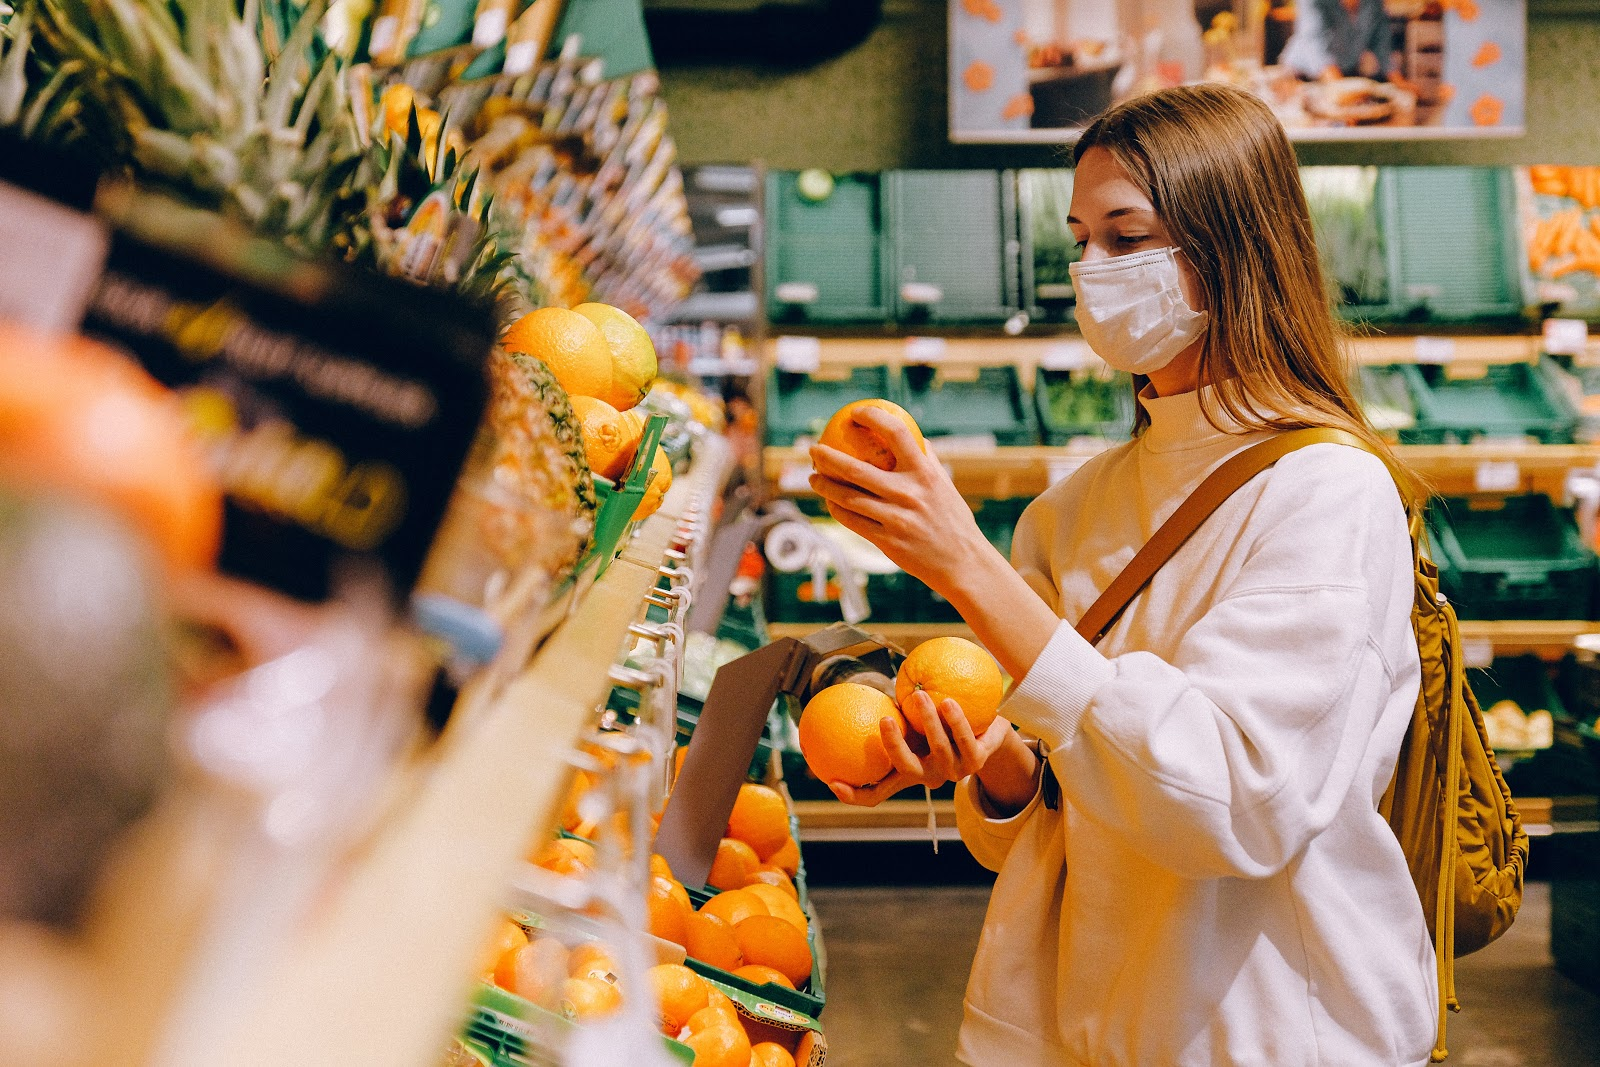 Lady at a grocery store wearing a mask shopping for oranges